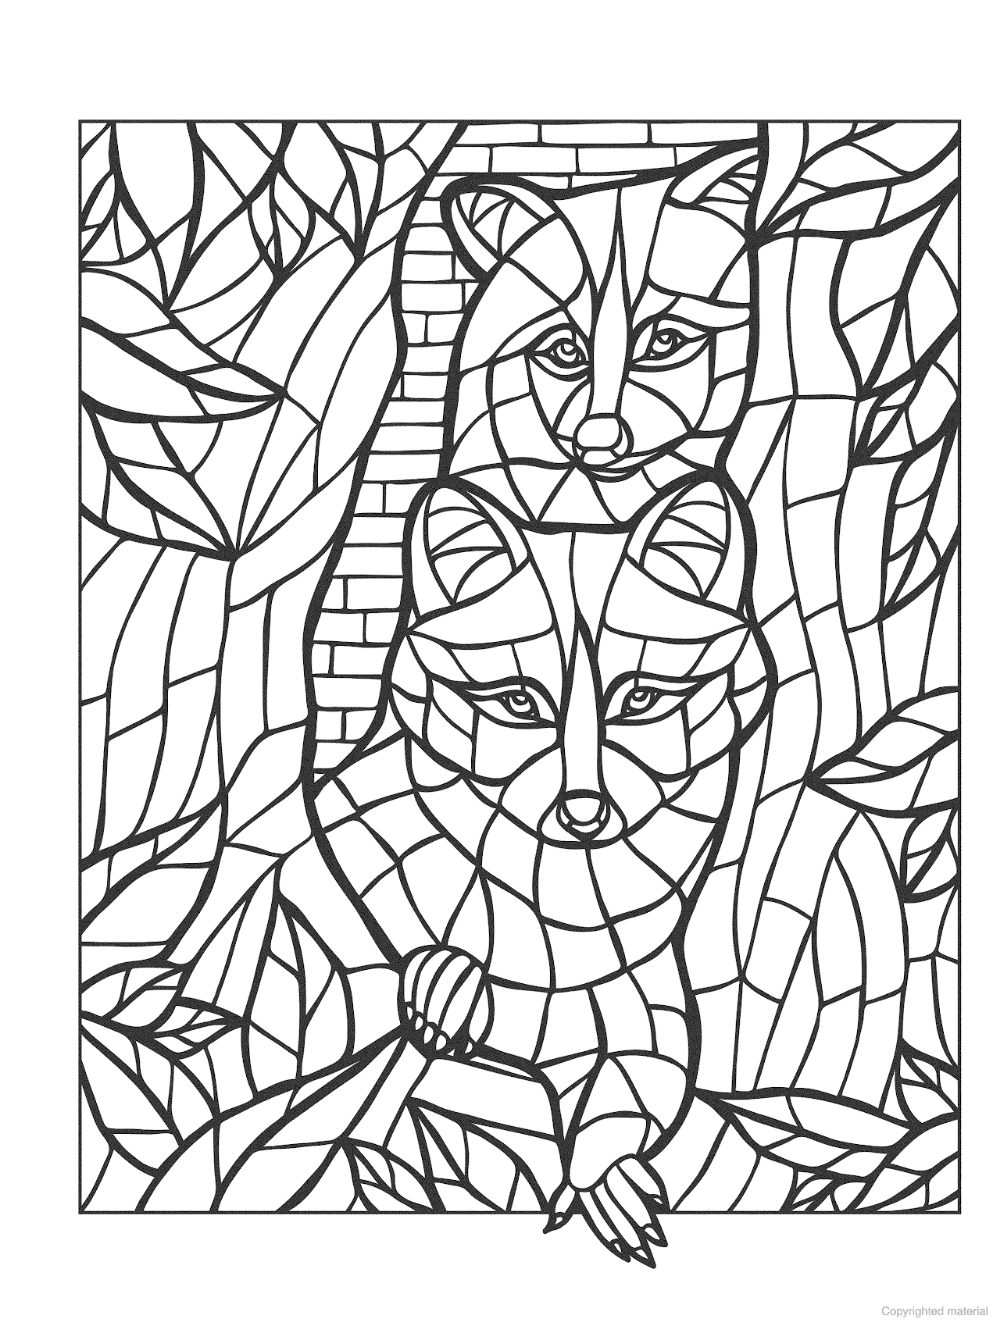 mosaic colouring pages mosaic coloring pages for adults free printable mosaic mosaic colouring pages